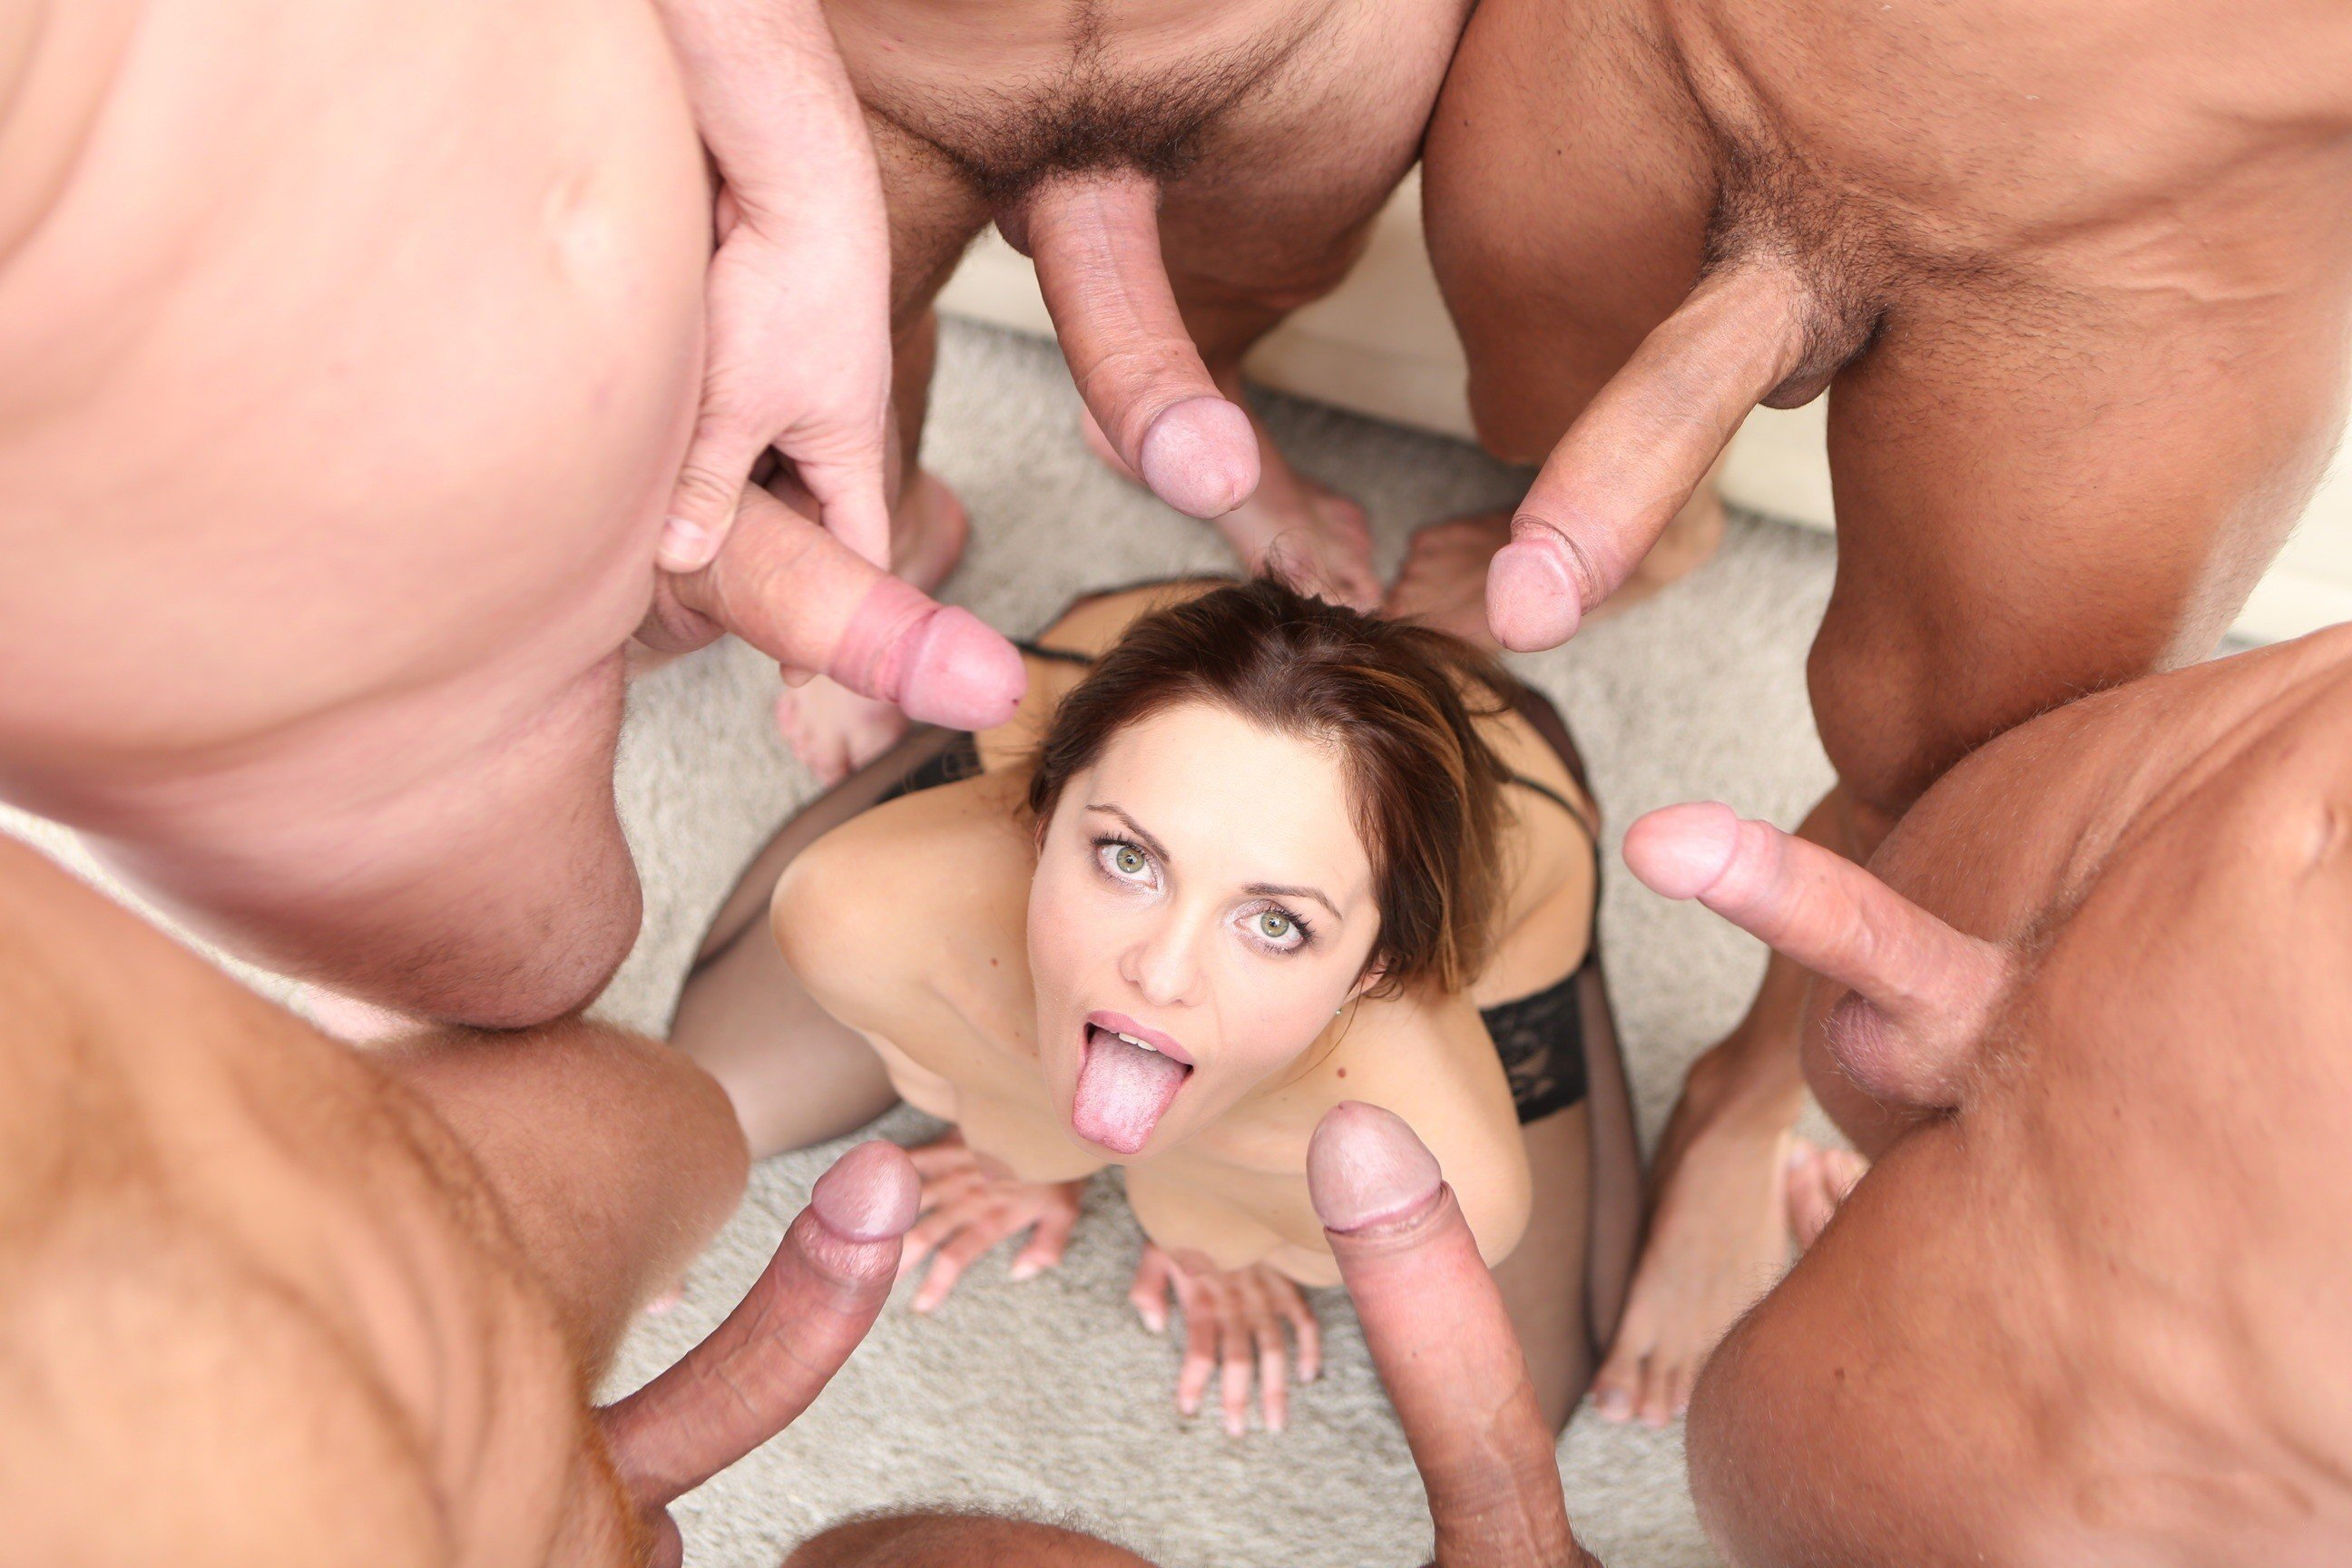 Gang bang hand jobs, how to sexualy pleasure my wife